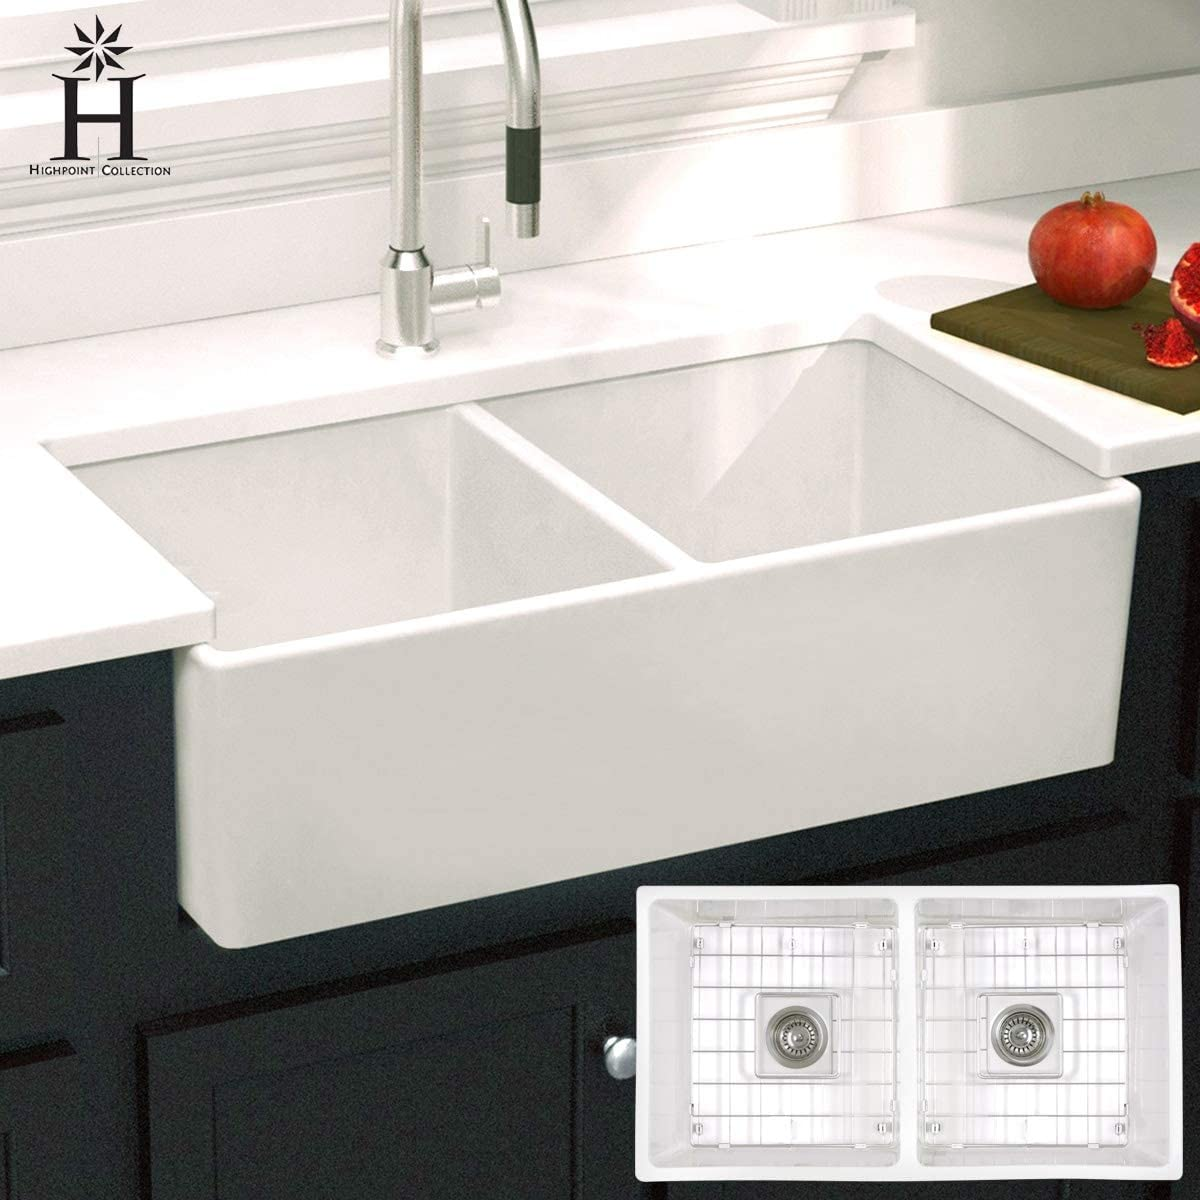 Double Bowl Farmhouse Sink - 33 Easy-to-use X Glossy White 10 18 R Rectangle Portland Mall